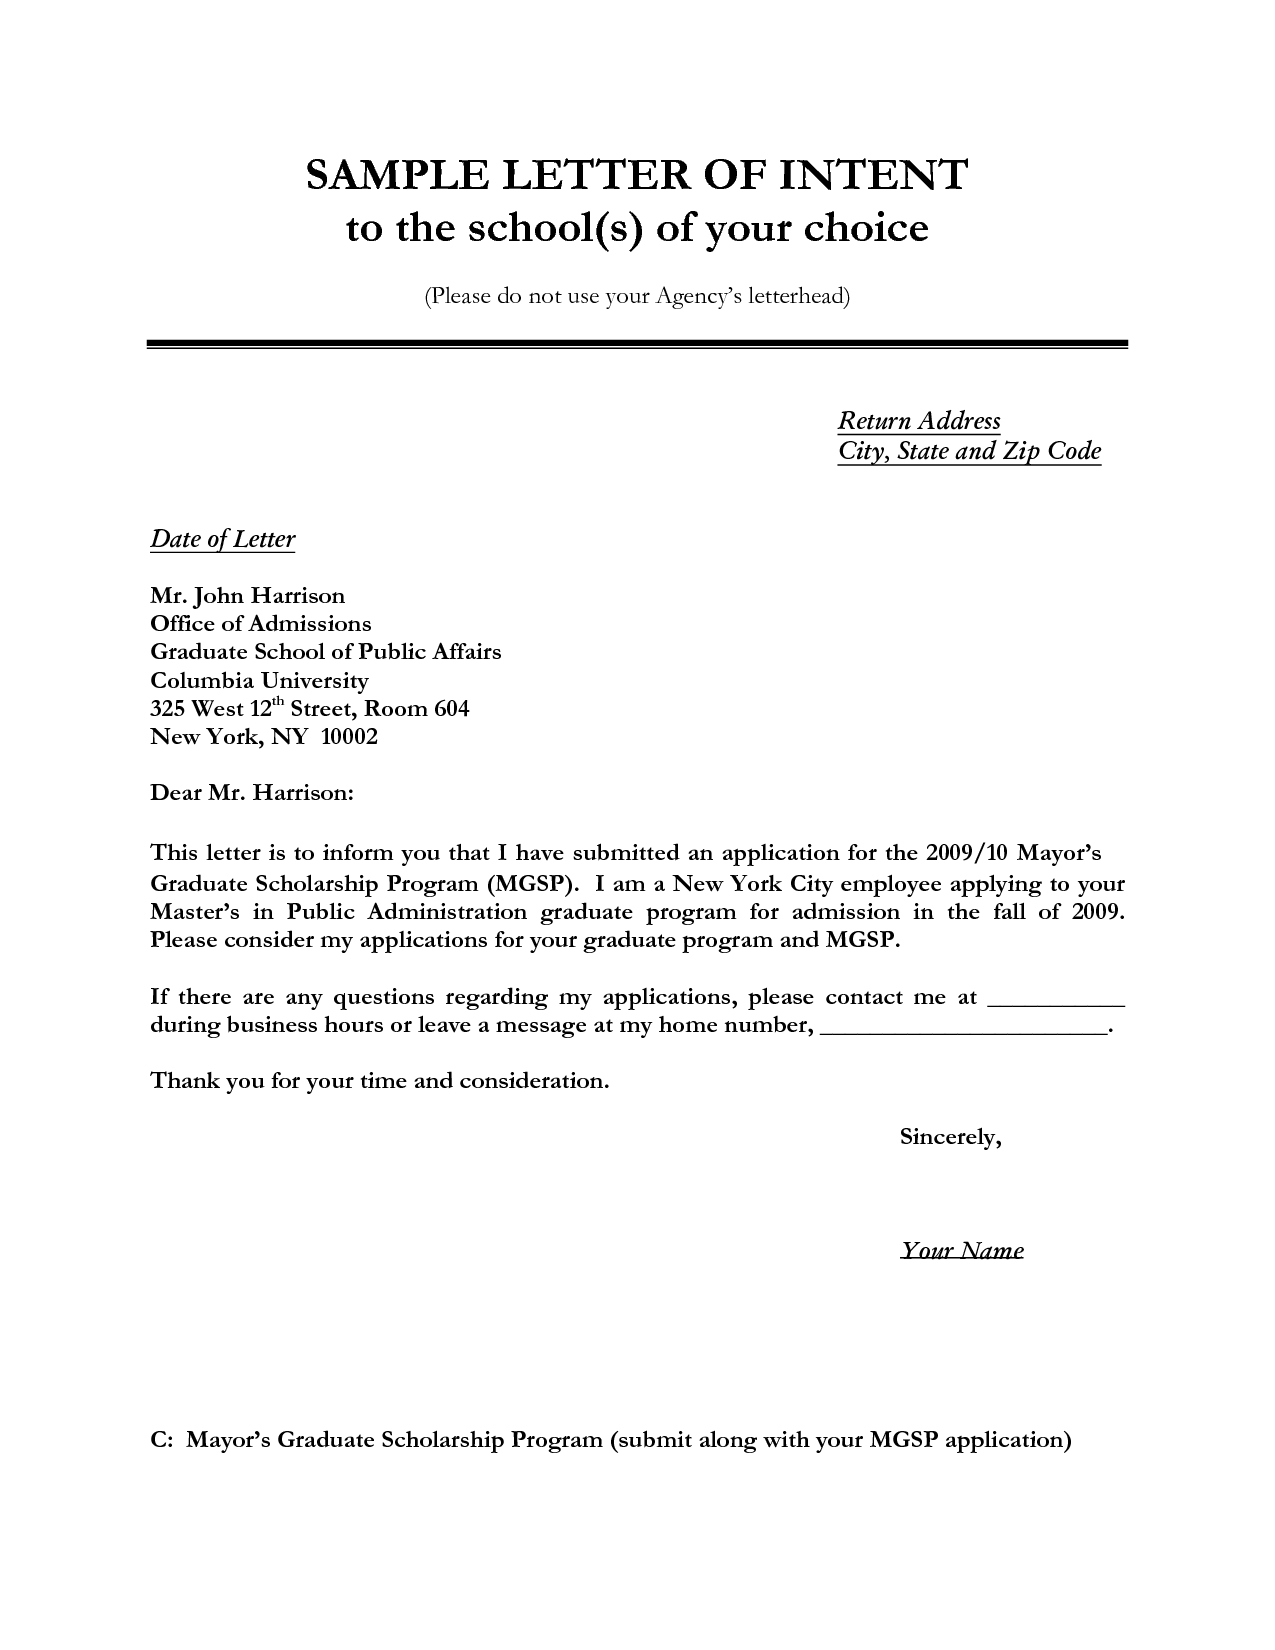 Letter Of Interest Template Pdf - Letter Of Intent Sample